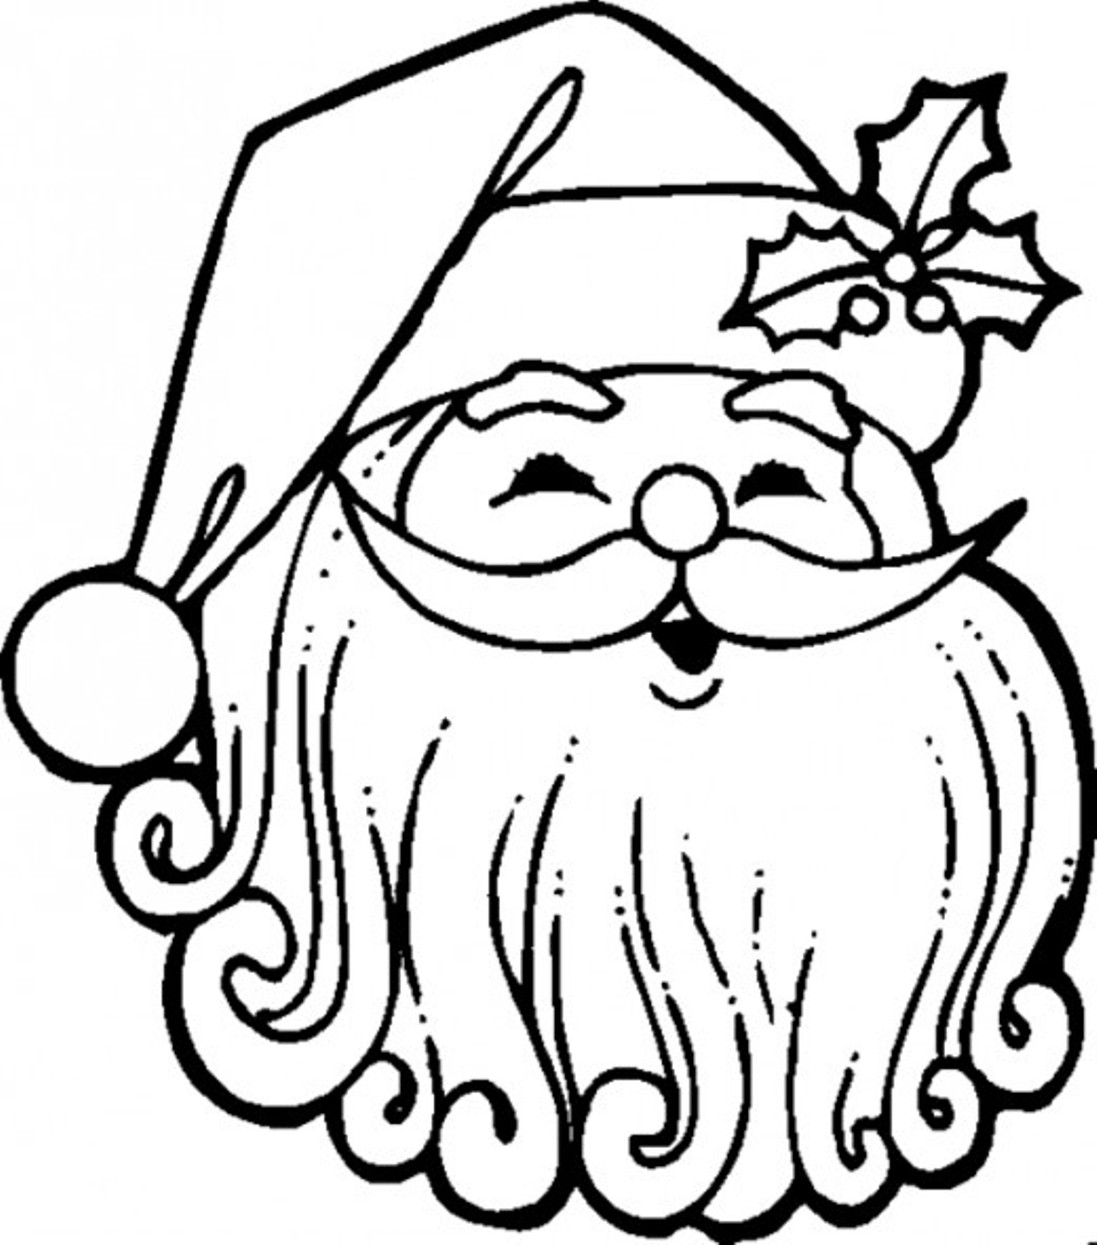 Easy Santa Drawing At Getdrawings Com Free For Personal Use Patterns Coloring Pages Village